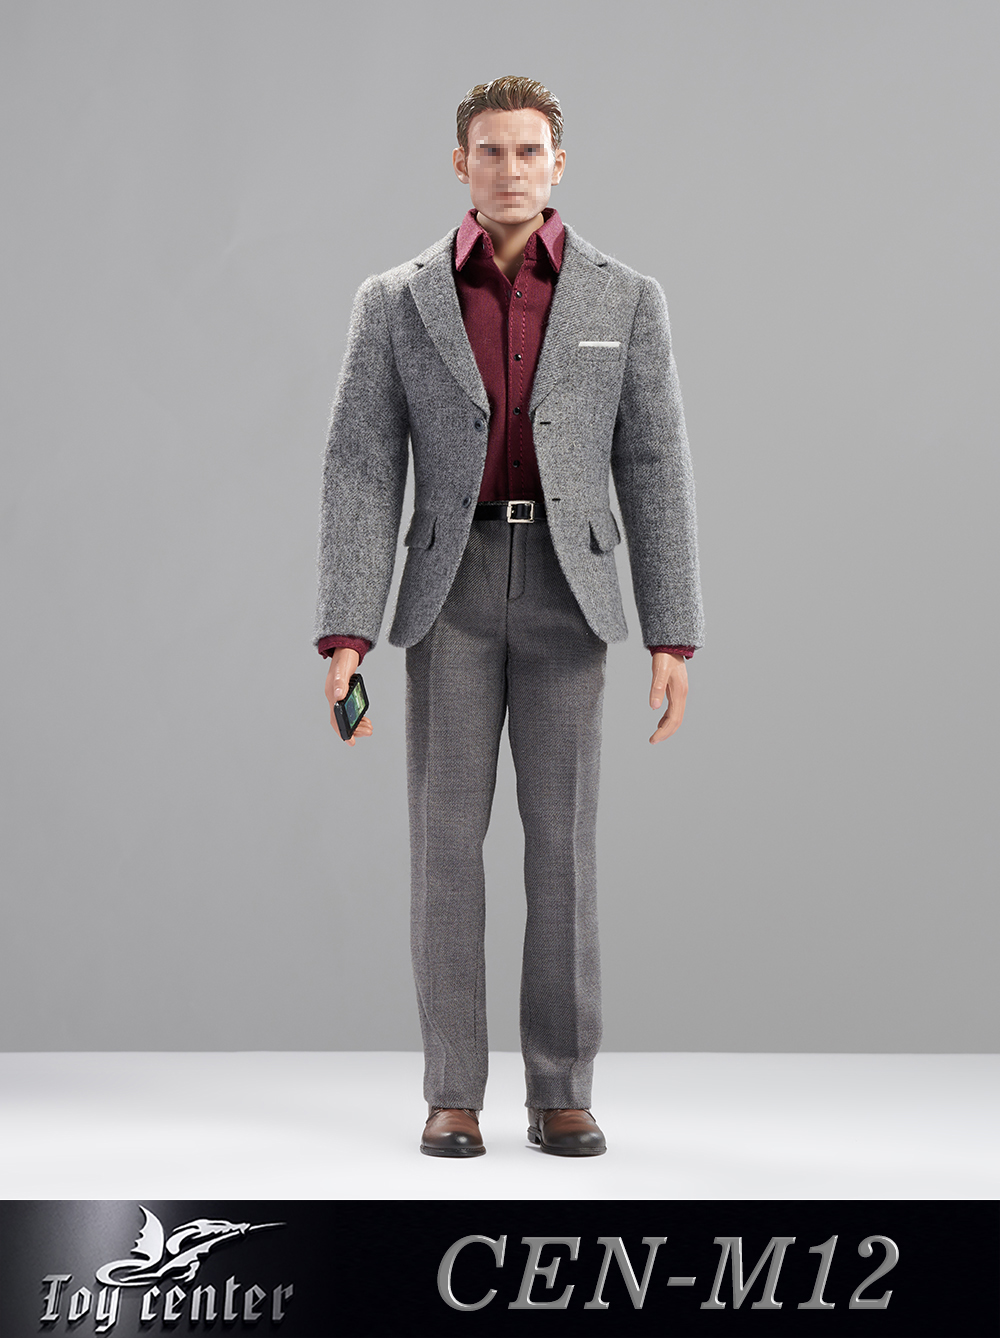 clothes - NEW PRODUCT: Toy center: 1/6 US team old casual suit CEN-M12# 16064110